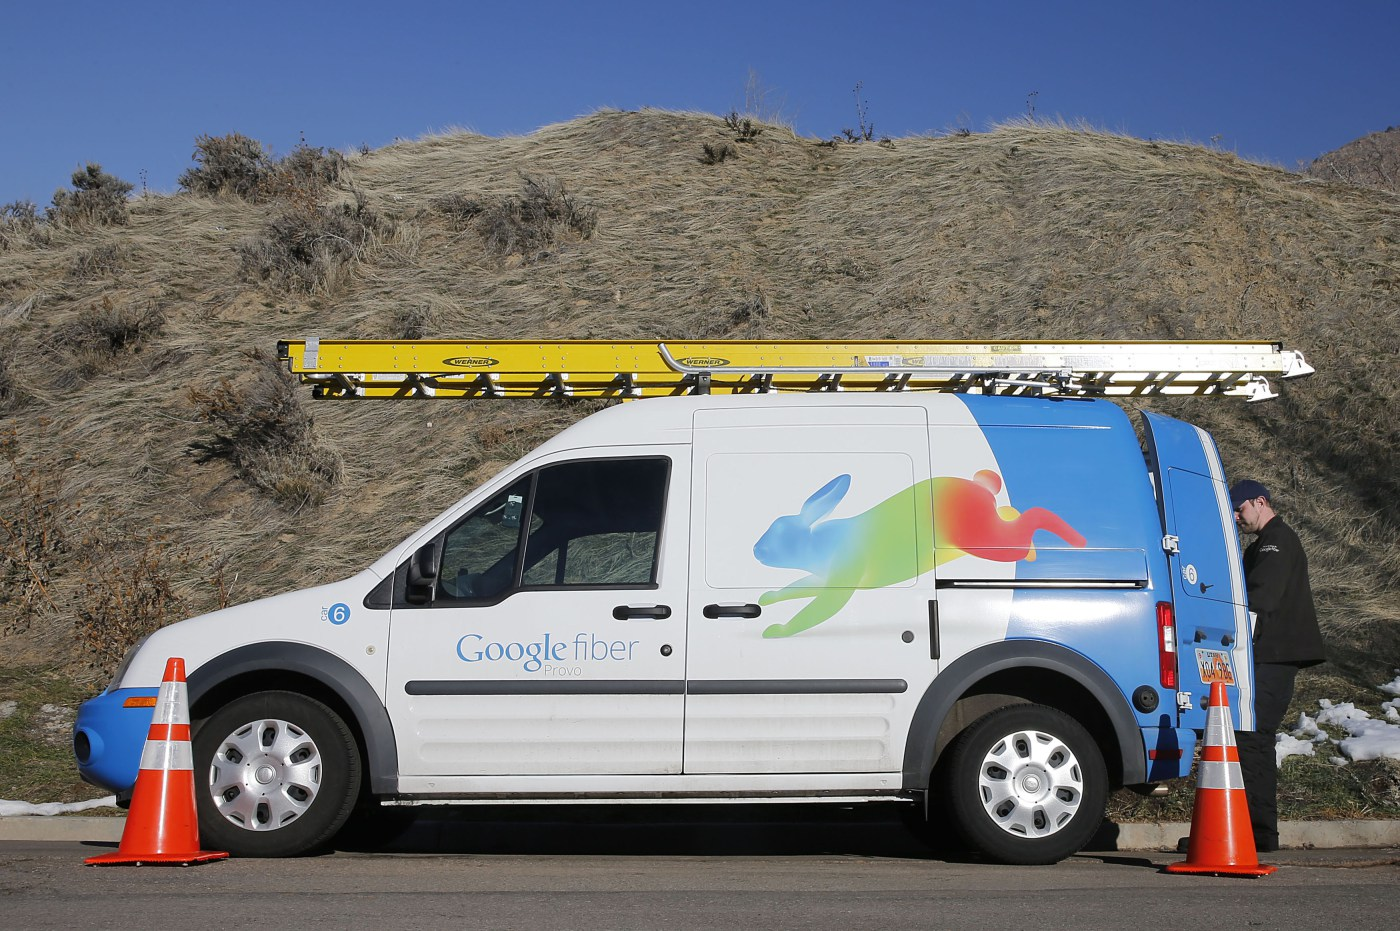 A Google Fiber technician gets supplies out of his truck to install Google Fiber in a residential home in Provo, Utah, January 2, 2014. Provo is one of three cities Google is currently building gigabit internet and television service for business and residential use.